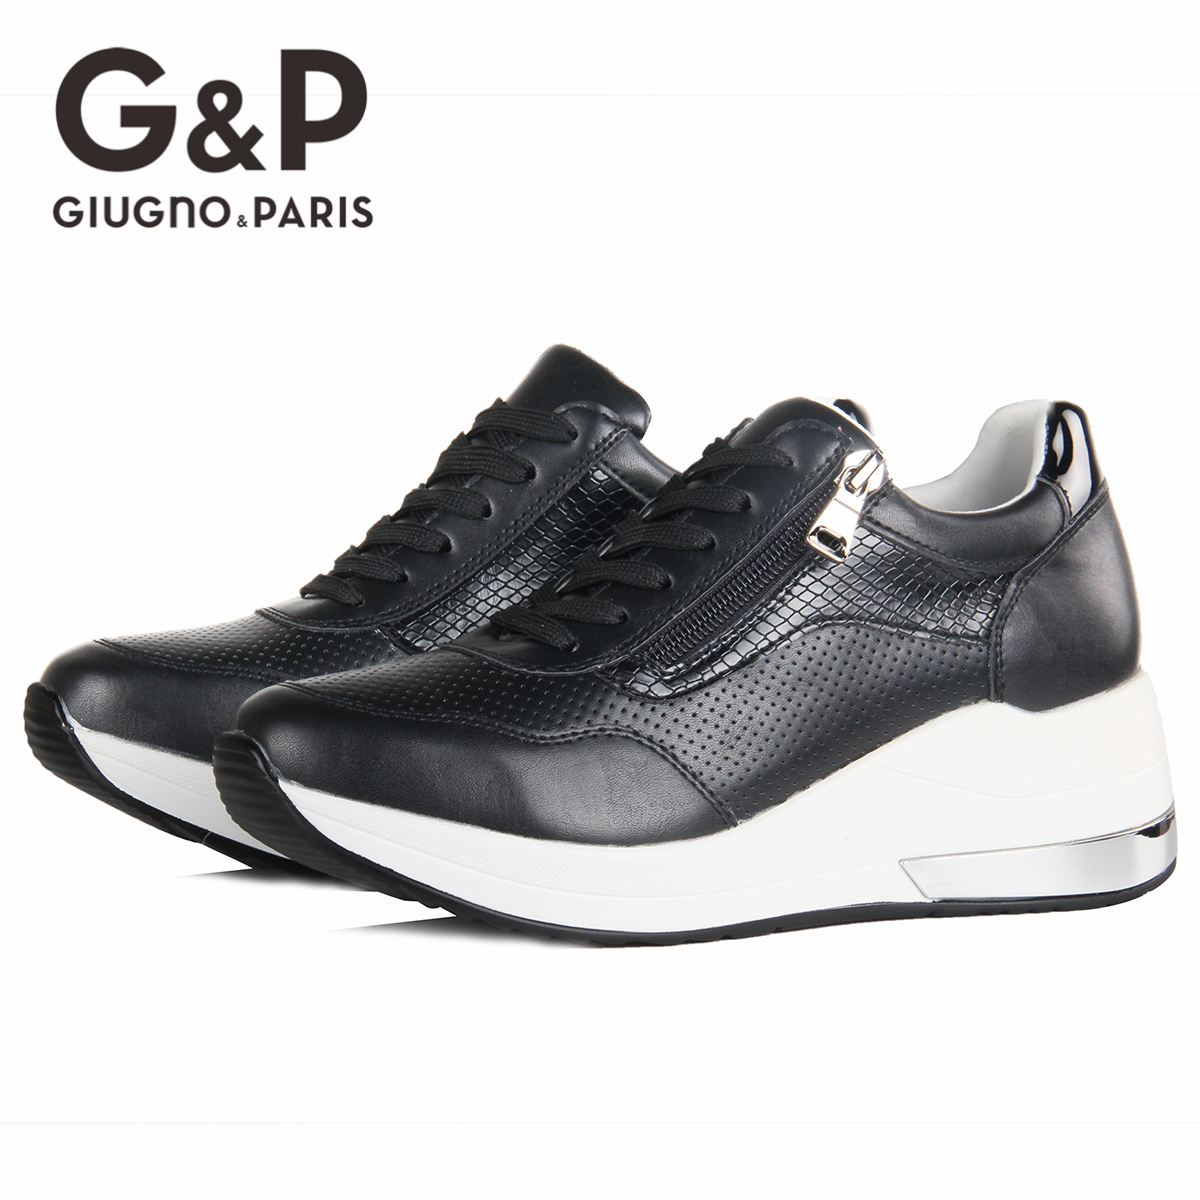 Brand Sneakers Women Breathable Shoes New Design 2020 Casual Platform Wedge Fashion Sneaker With Zipper Easy to Wear 4